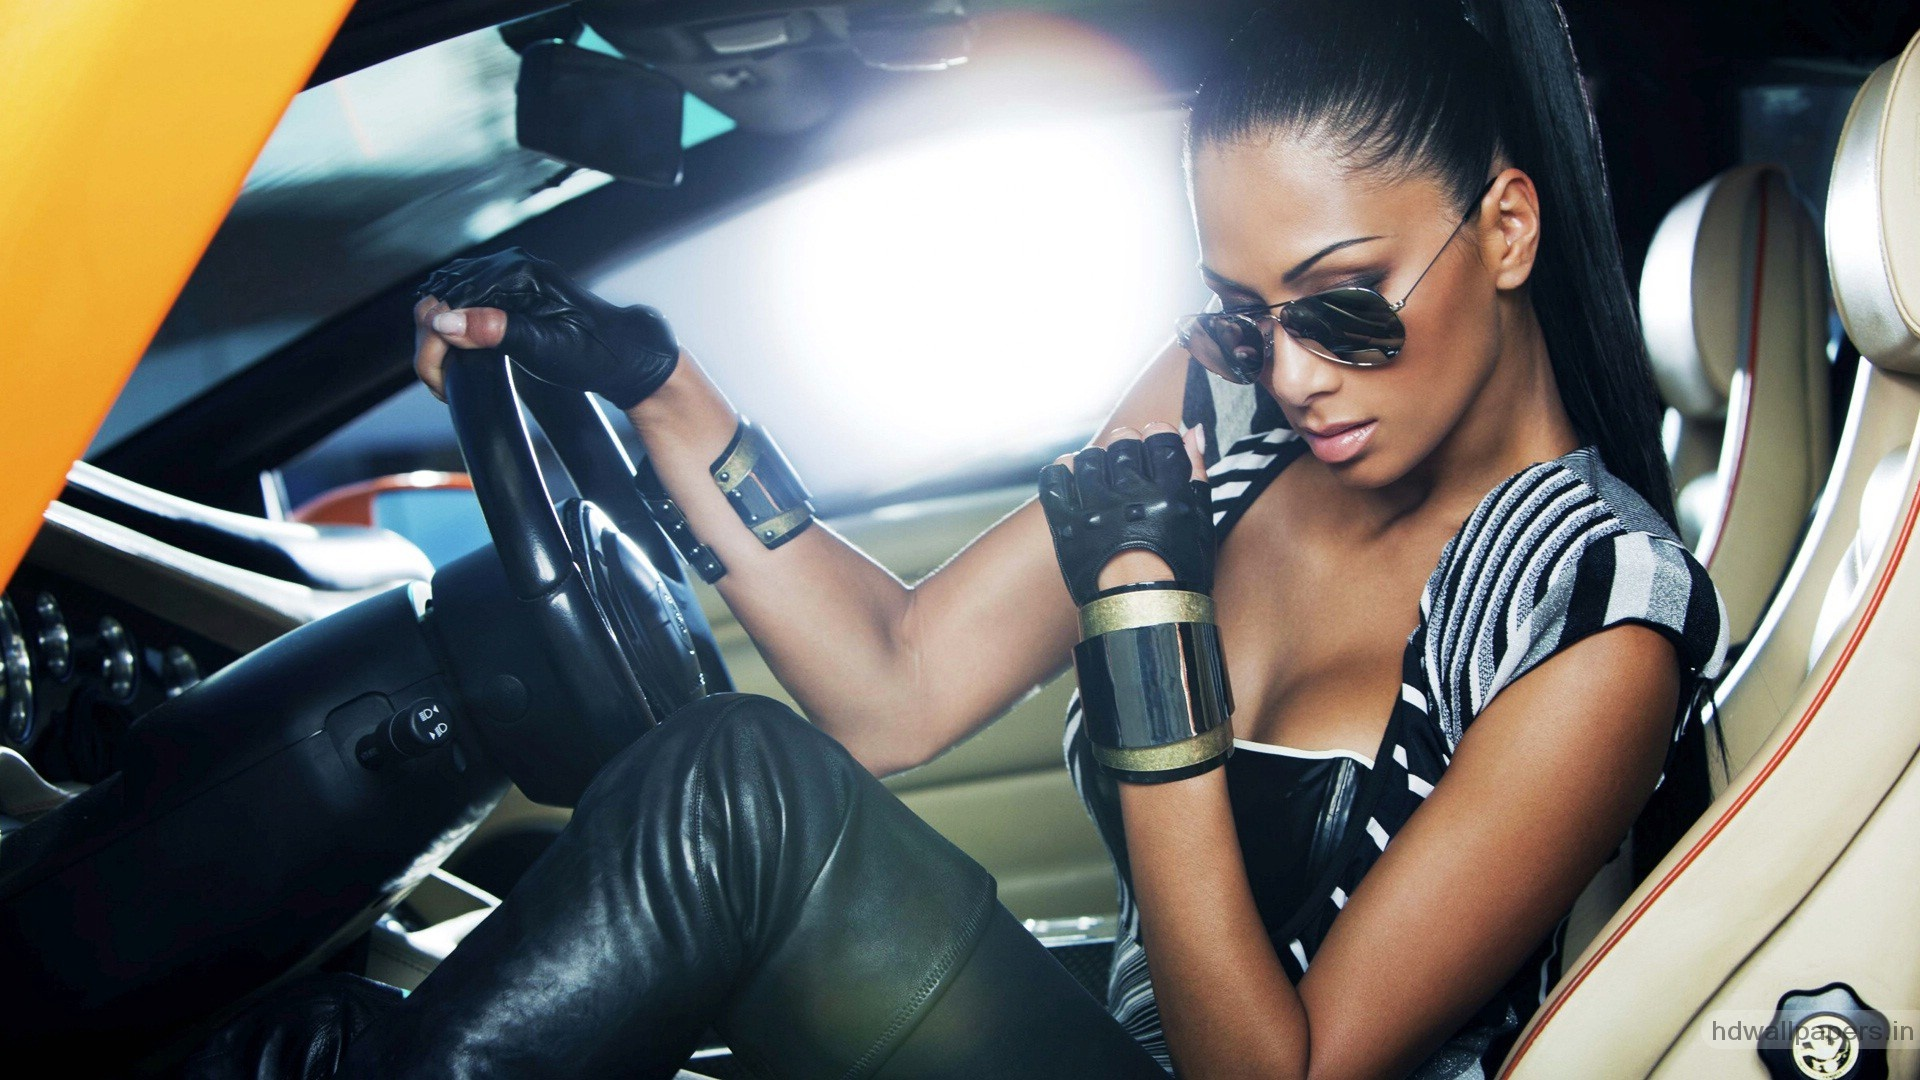 nicole scherzinger wallpapers hd A7